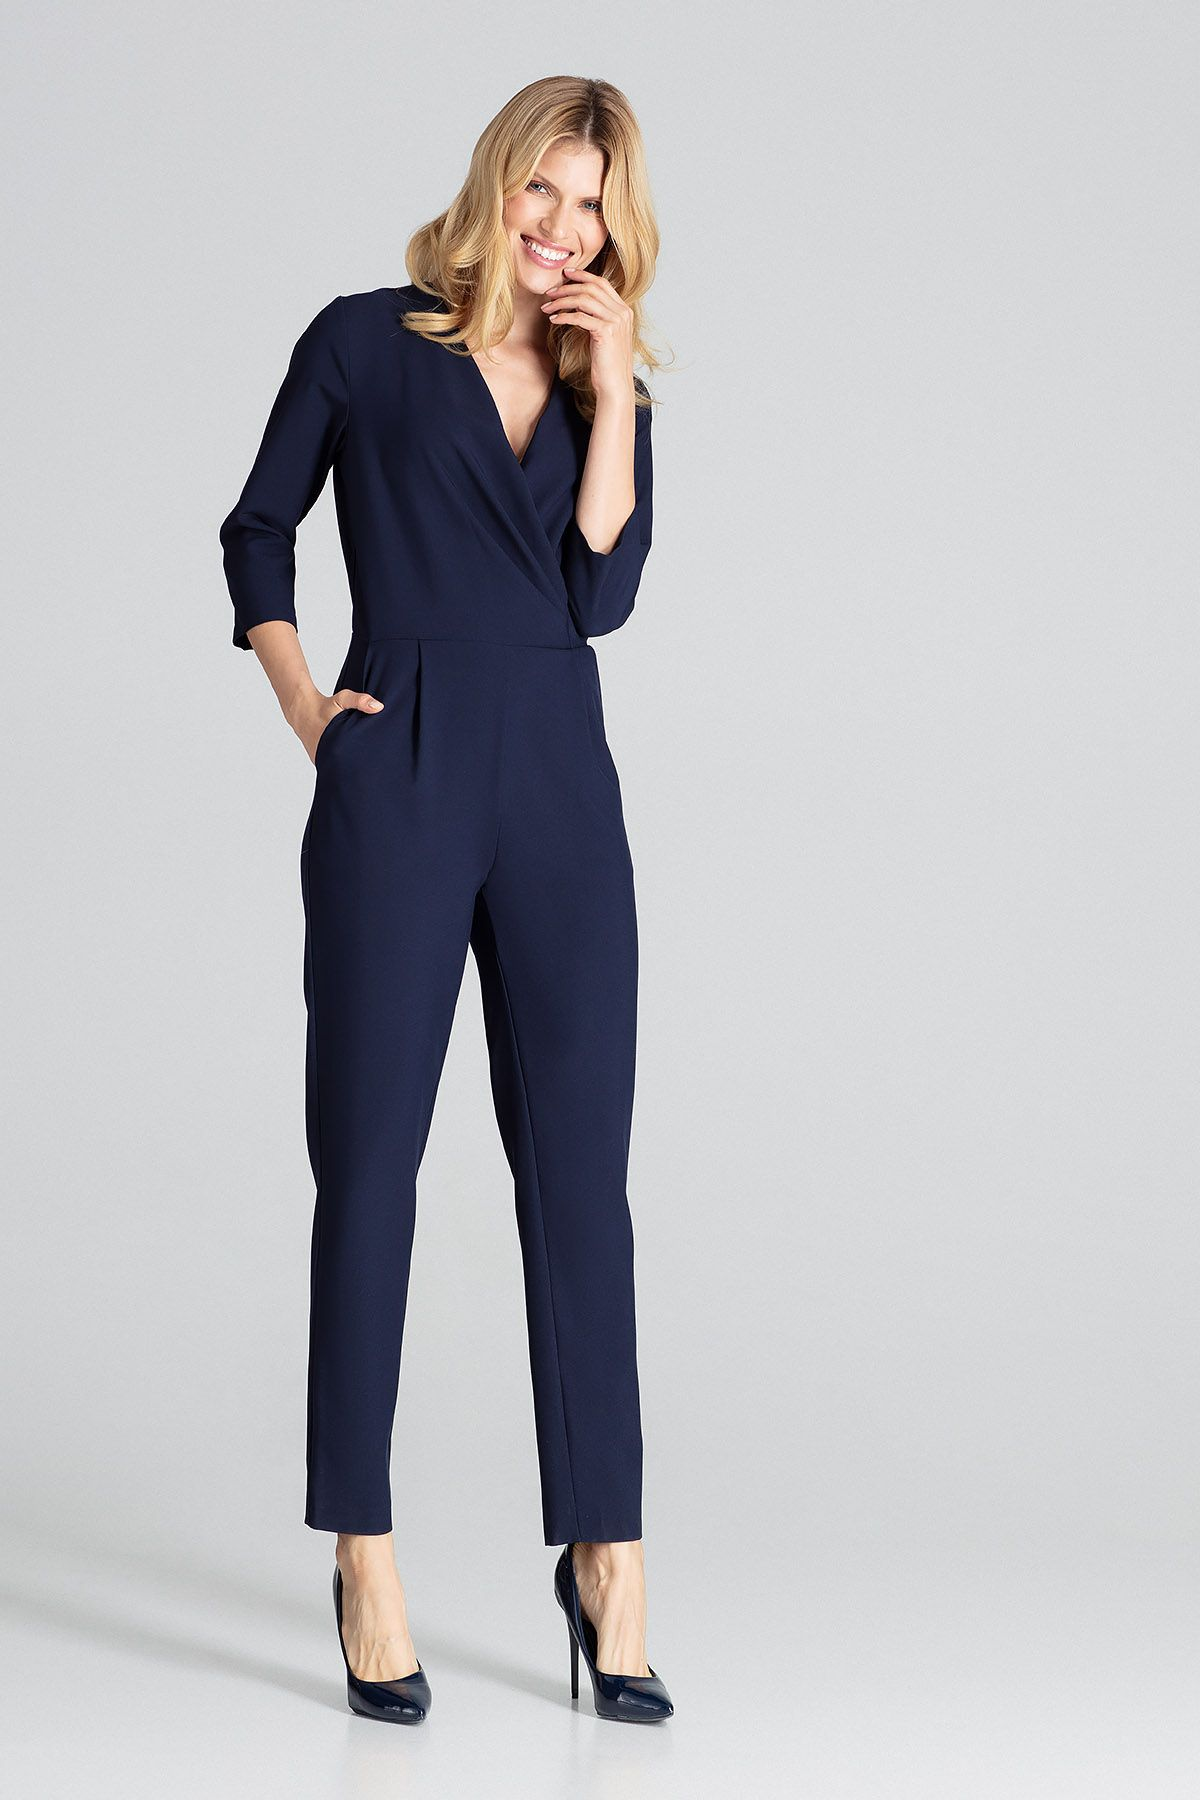 Navy Jumpsuit With 3/4 Sleeves